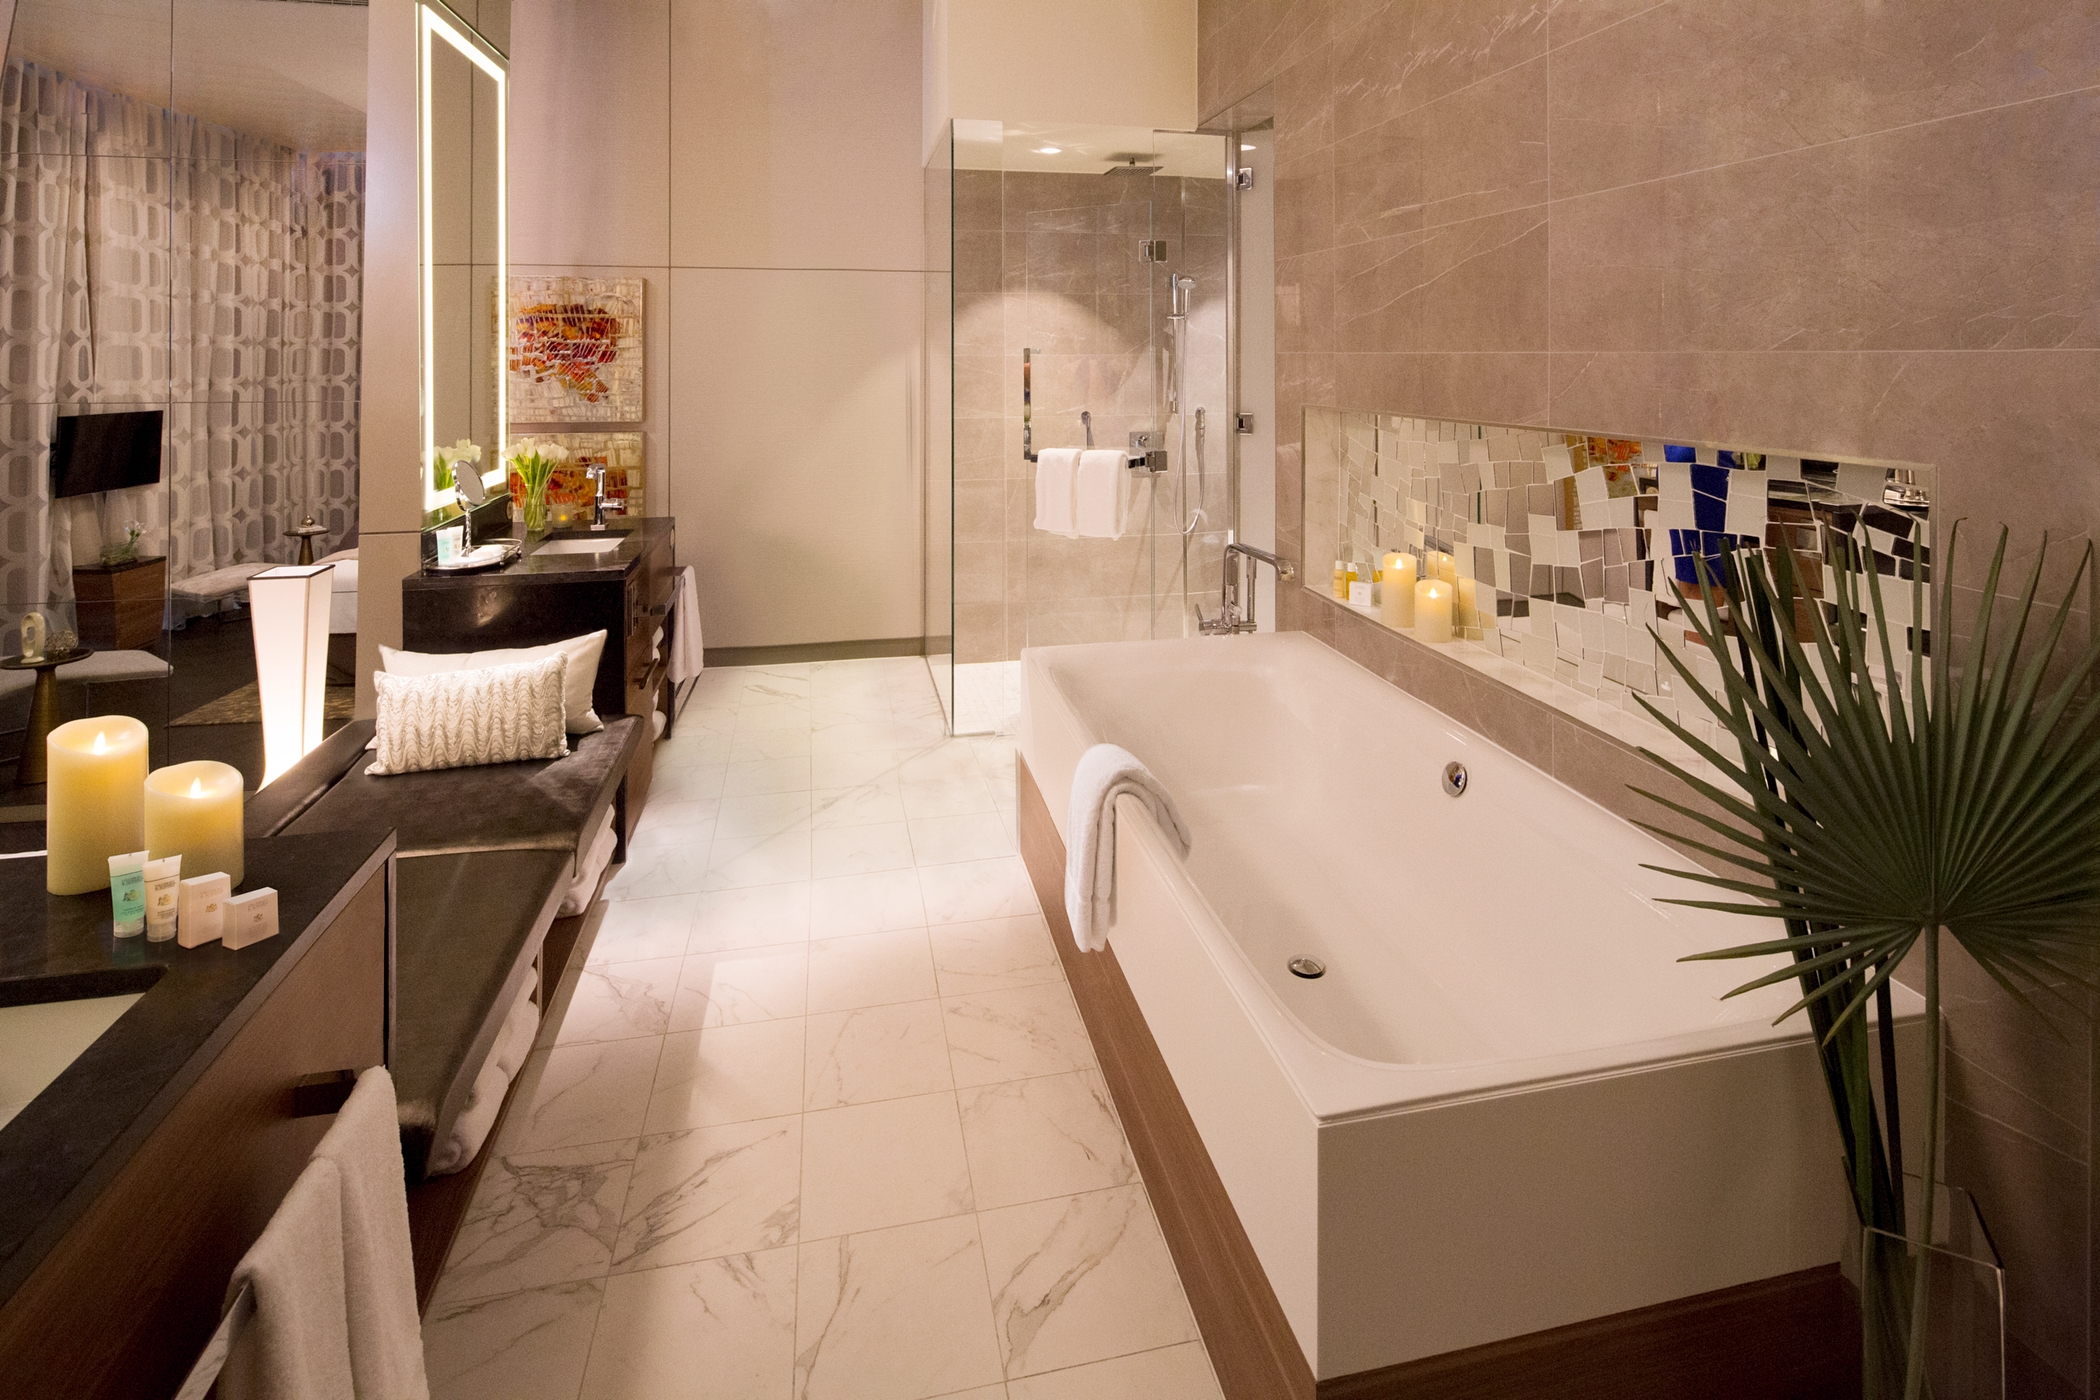 Royal Caribbean International Oasis of the seas accommodation Royal suite bathroom.jpg